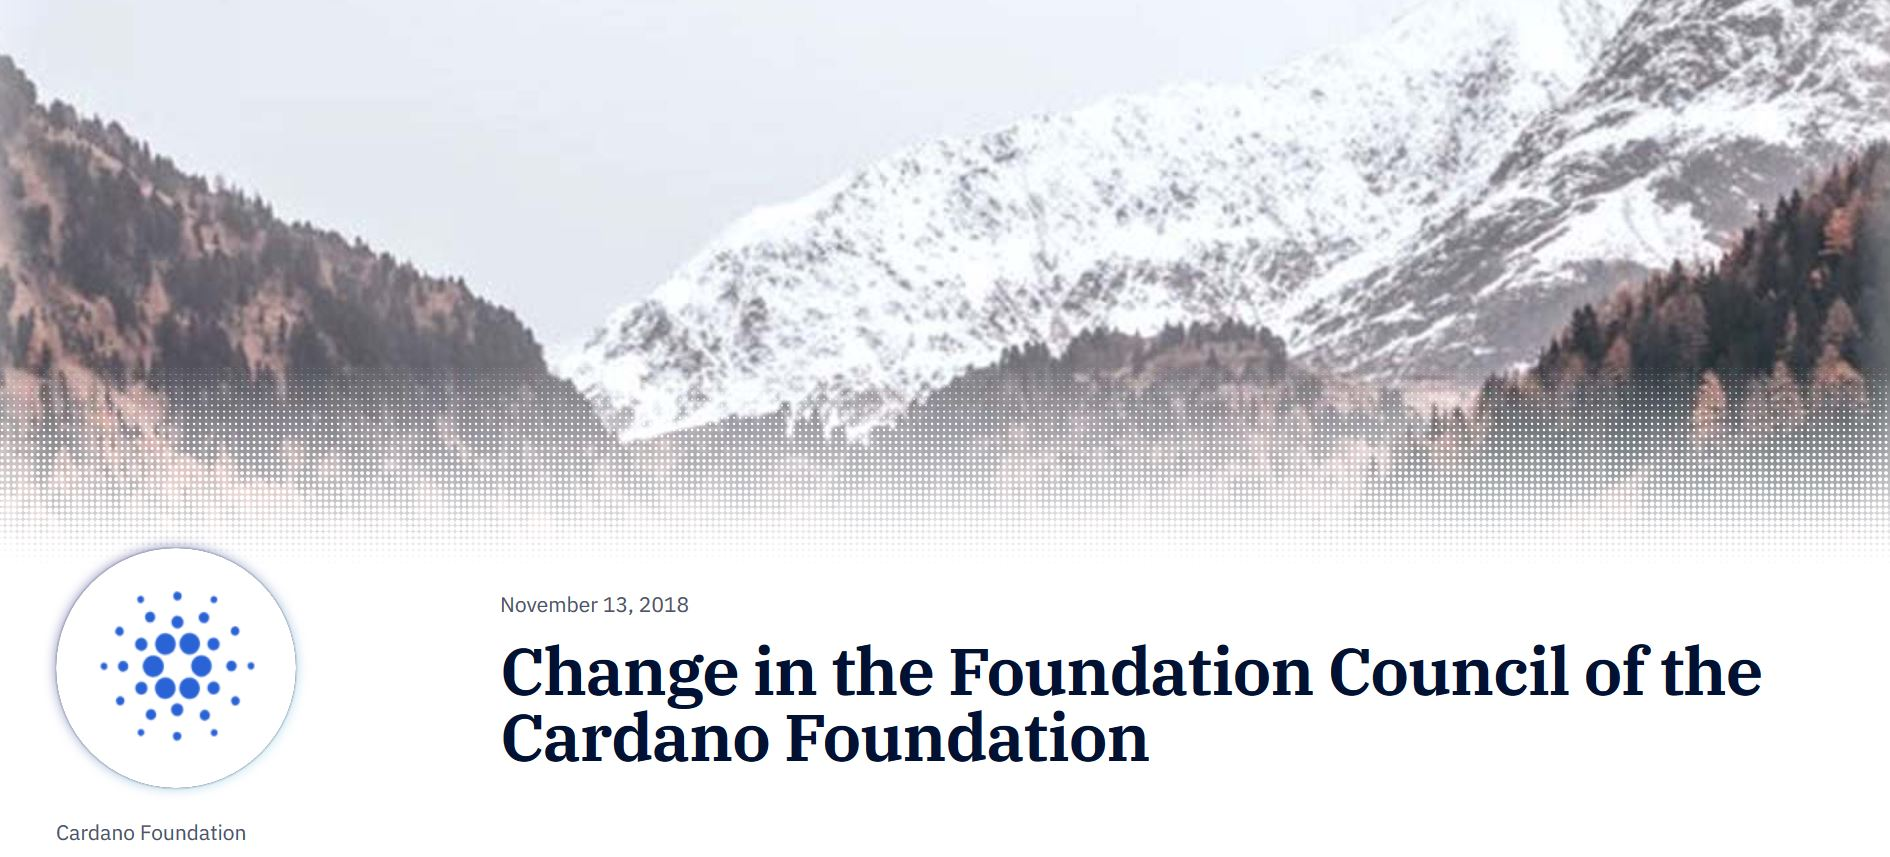 Change in the Foundation Council of the Cardano Foundation